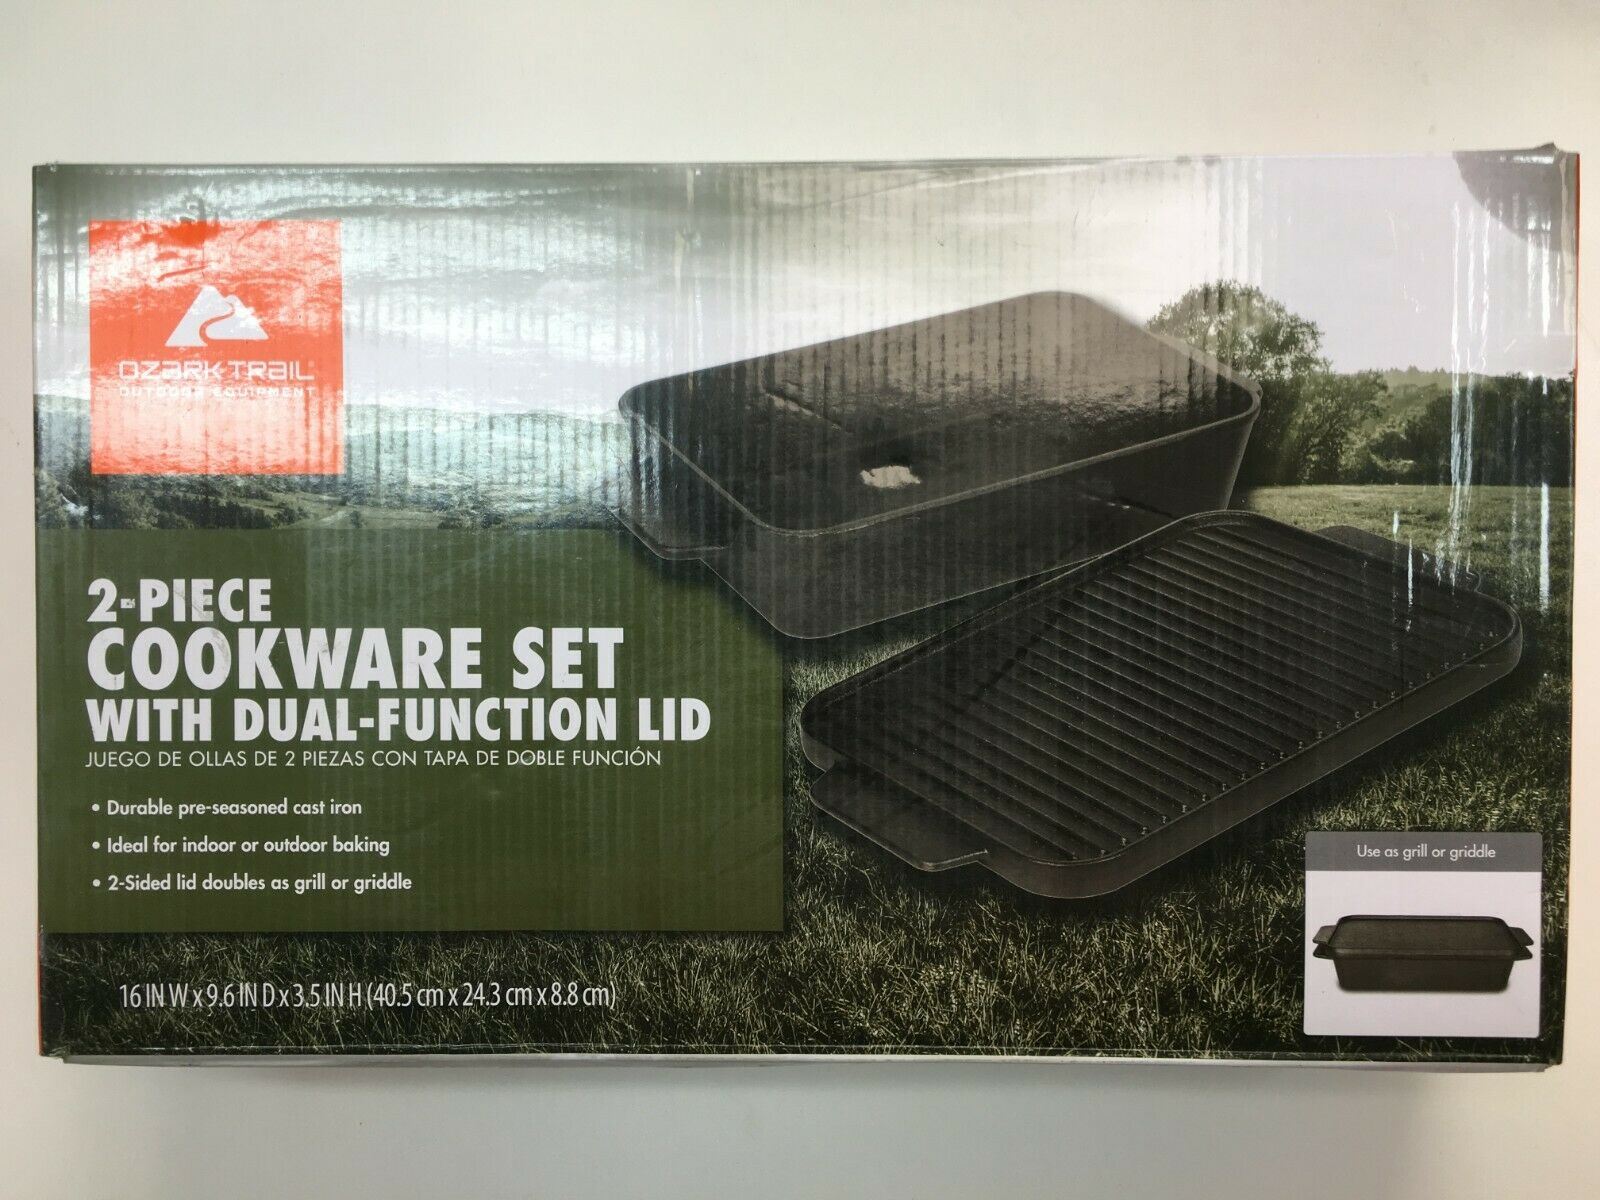 OZARK TRAIL OUT DOOR EQUIPMENT ( 2 - PIECE  COOKWARE SET0 WITH DUAL-FUNCTION LID  retail stores